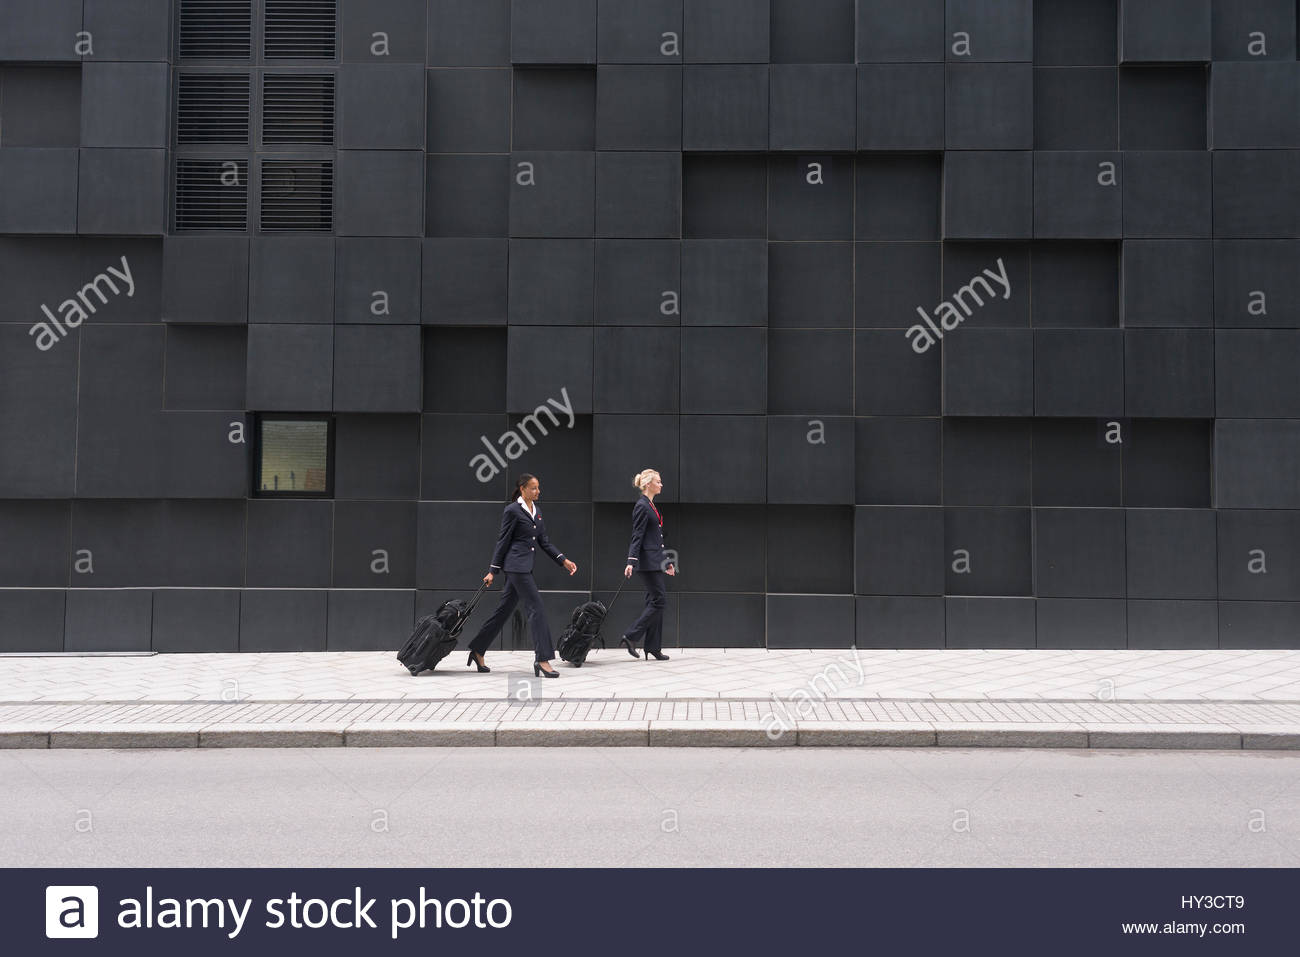 Norway, Oslo, Stewardesses walking with suitcases - Stock Image